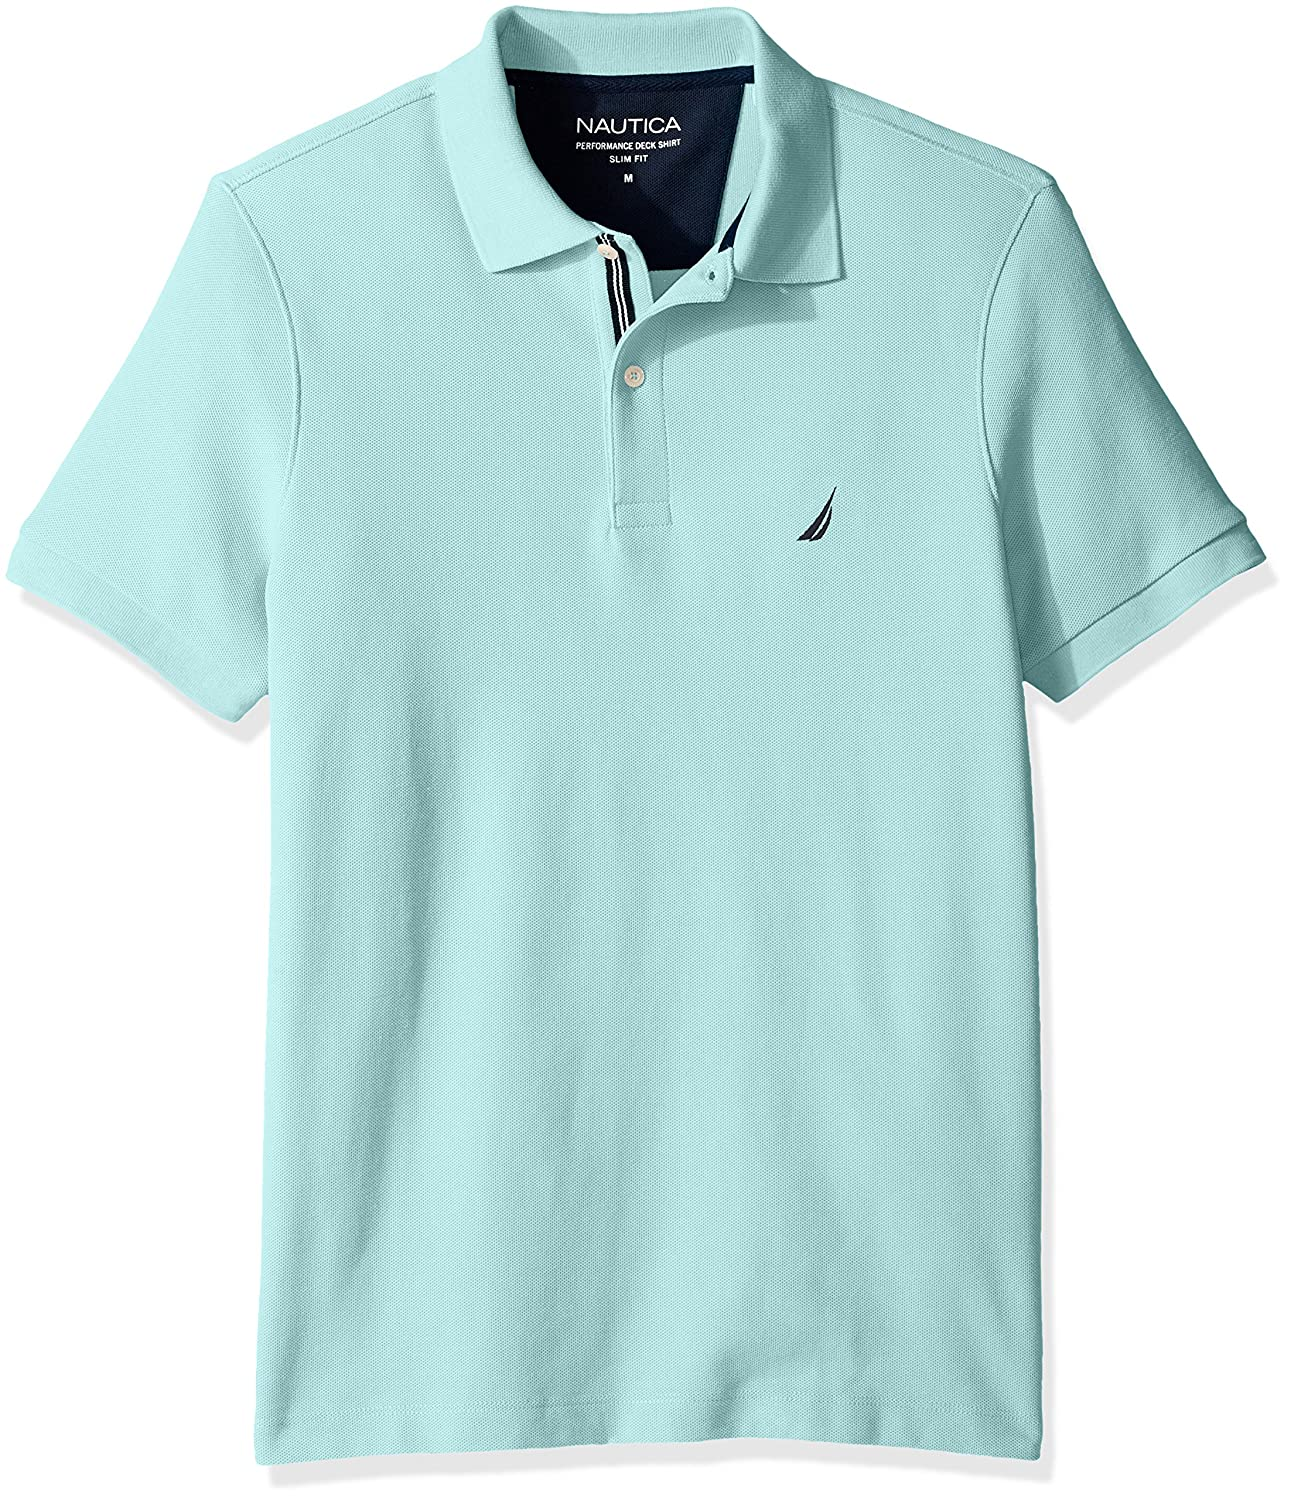 Nautica Mens Slim Fit Short Sleeve Solid Polo Shirt, Harbor Mist ...